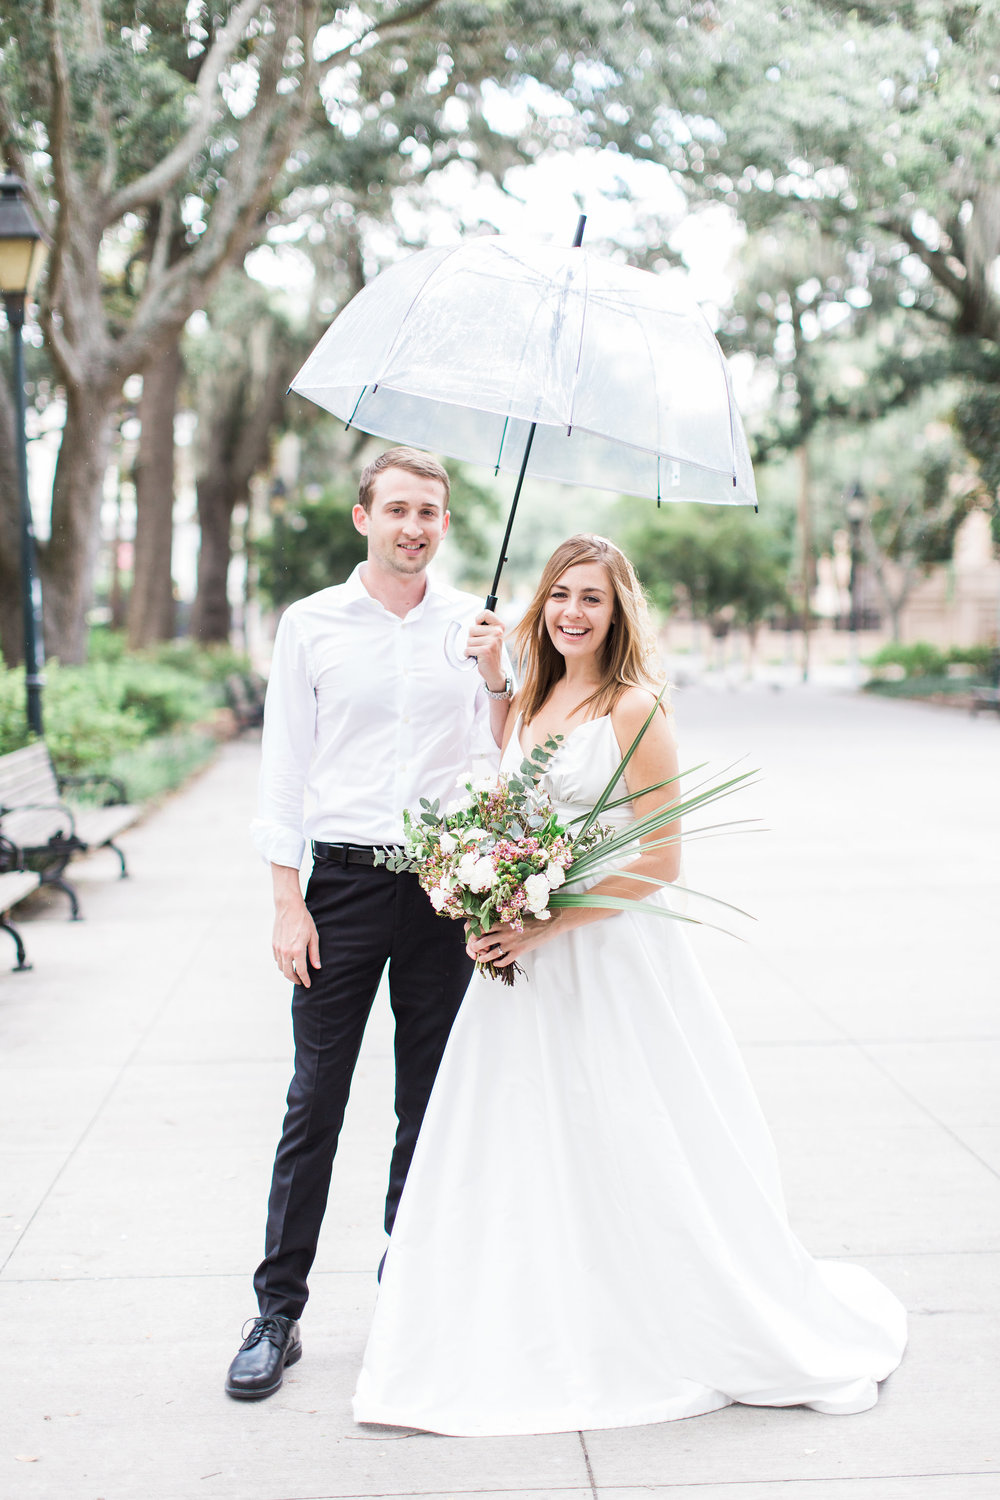 apt-b-photography-kate-mcdonald-mccants-forsyth-park-elopement-forsyth-fountain-rainy-wedding-day-savannah-florist-ivory-and-beau-bridal-boutique-savannah-wedding-gowns-savannah-weddings-savannah-wedding-planner-adele-amelia-gold-veil-1.jpg